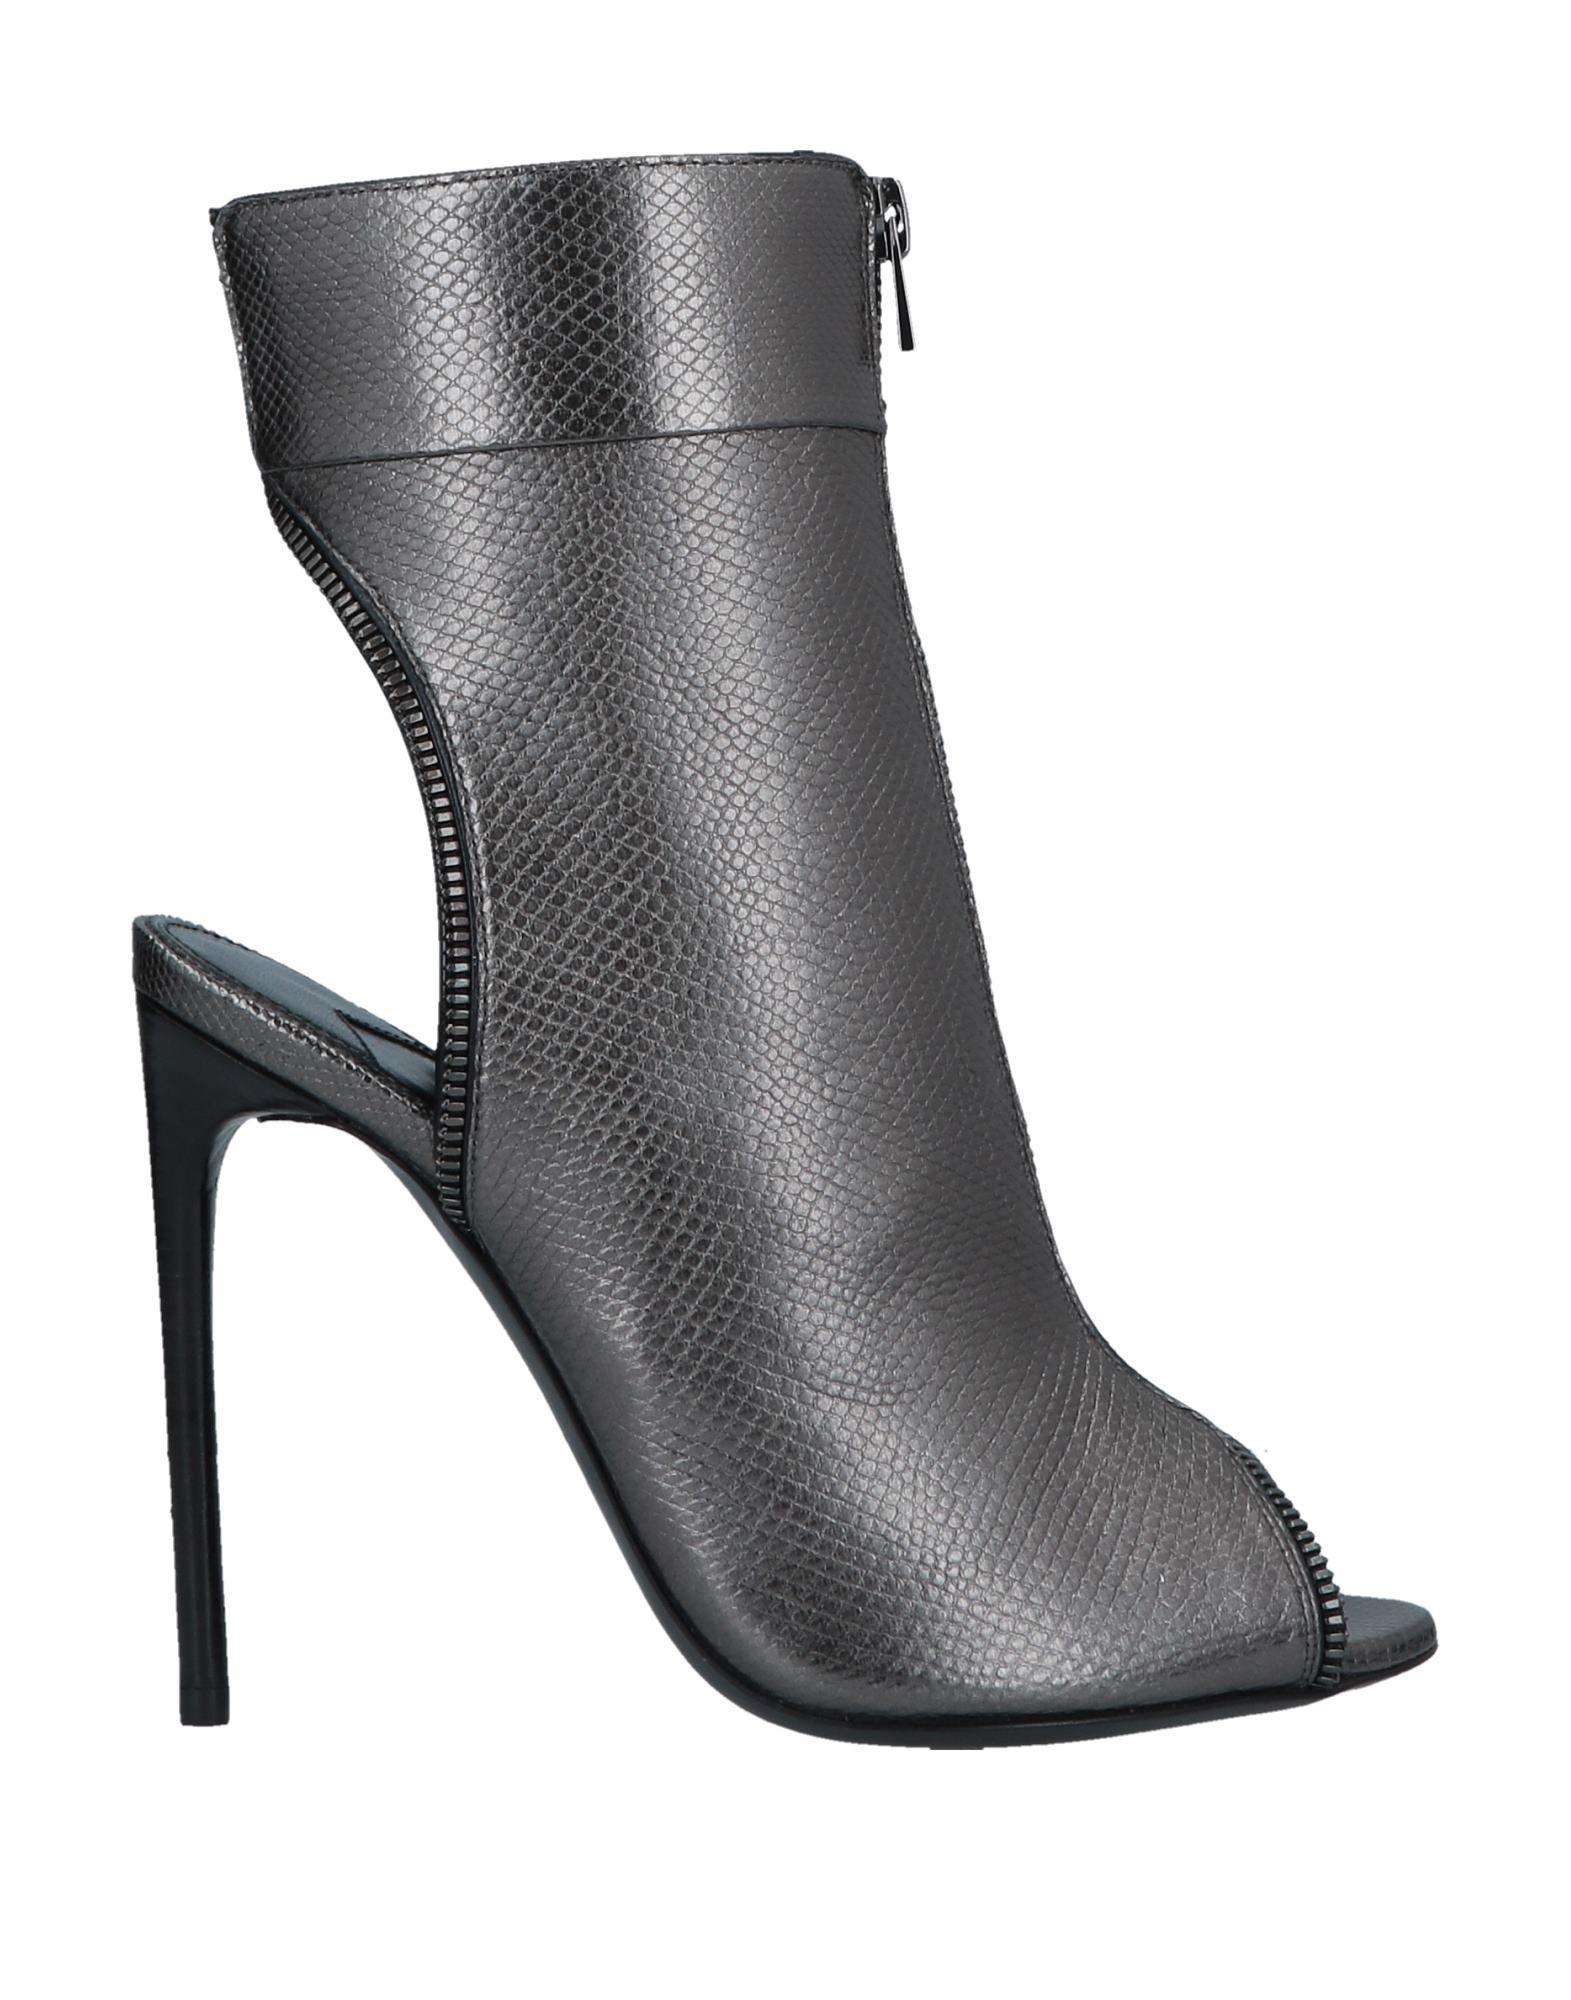 3631ce70201d Lyst - Tom Ford Ankle Boots in Gray